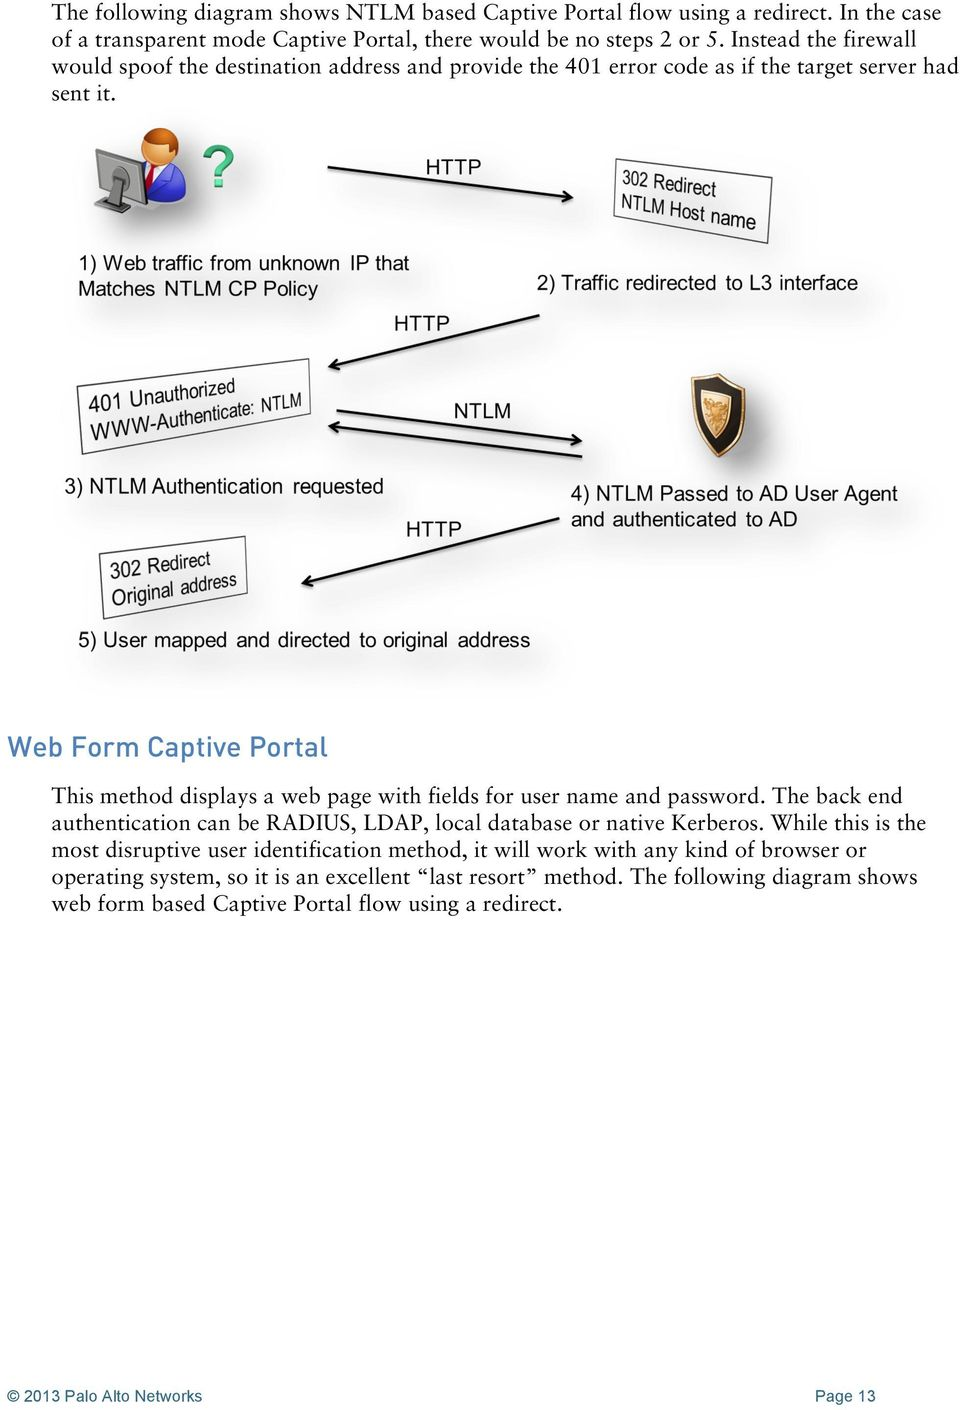 Web Form Captive Portal This method displays a web page with fields for user name and password. The back end authentication can be RADIUS, LDAP, local database or native Kerberos.